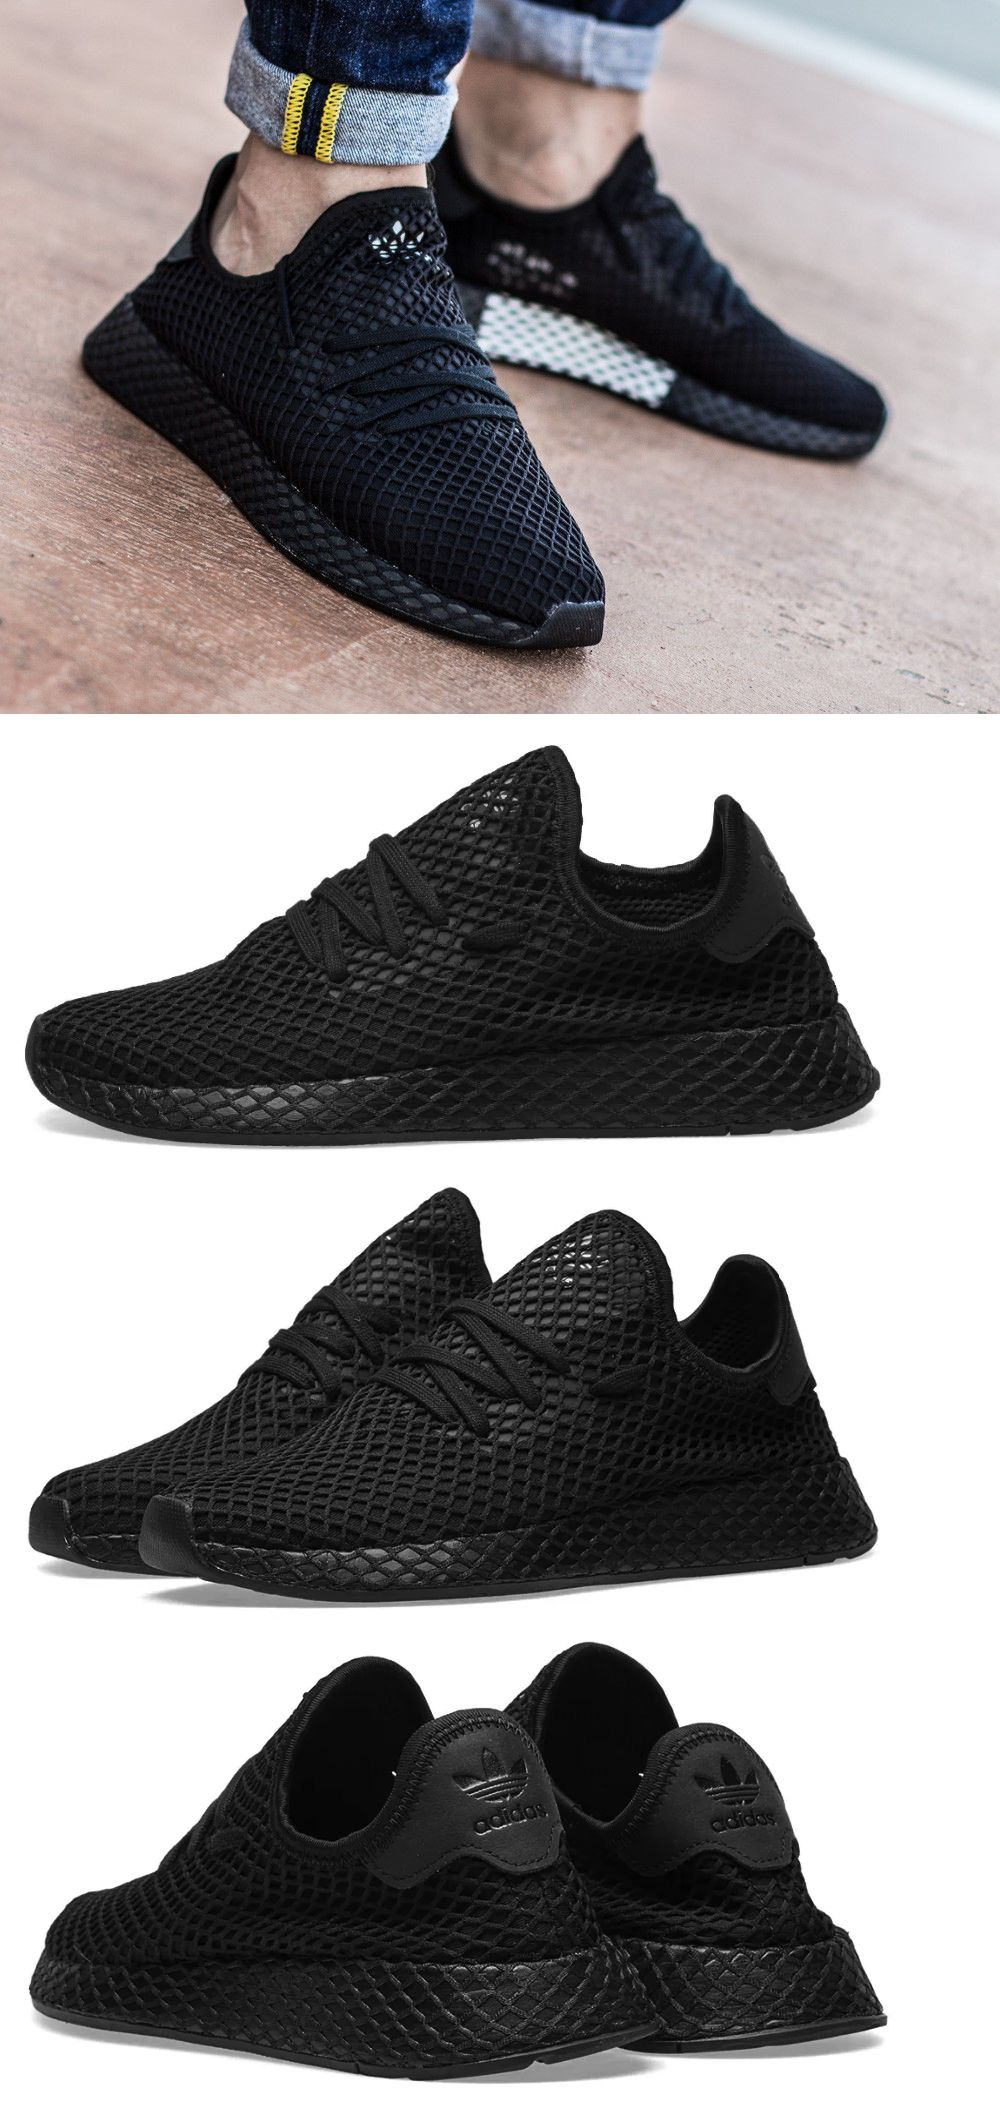 0982f9e19f3694 Athletic Shoes 15709  New Adidas Originals Deerupt Runner Sneaker Mens  Triple Black White All Sz -  BUY IT NOW ONLY   69.99 on  eBay  athletic   shoes ...